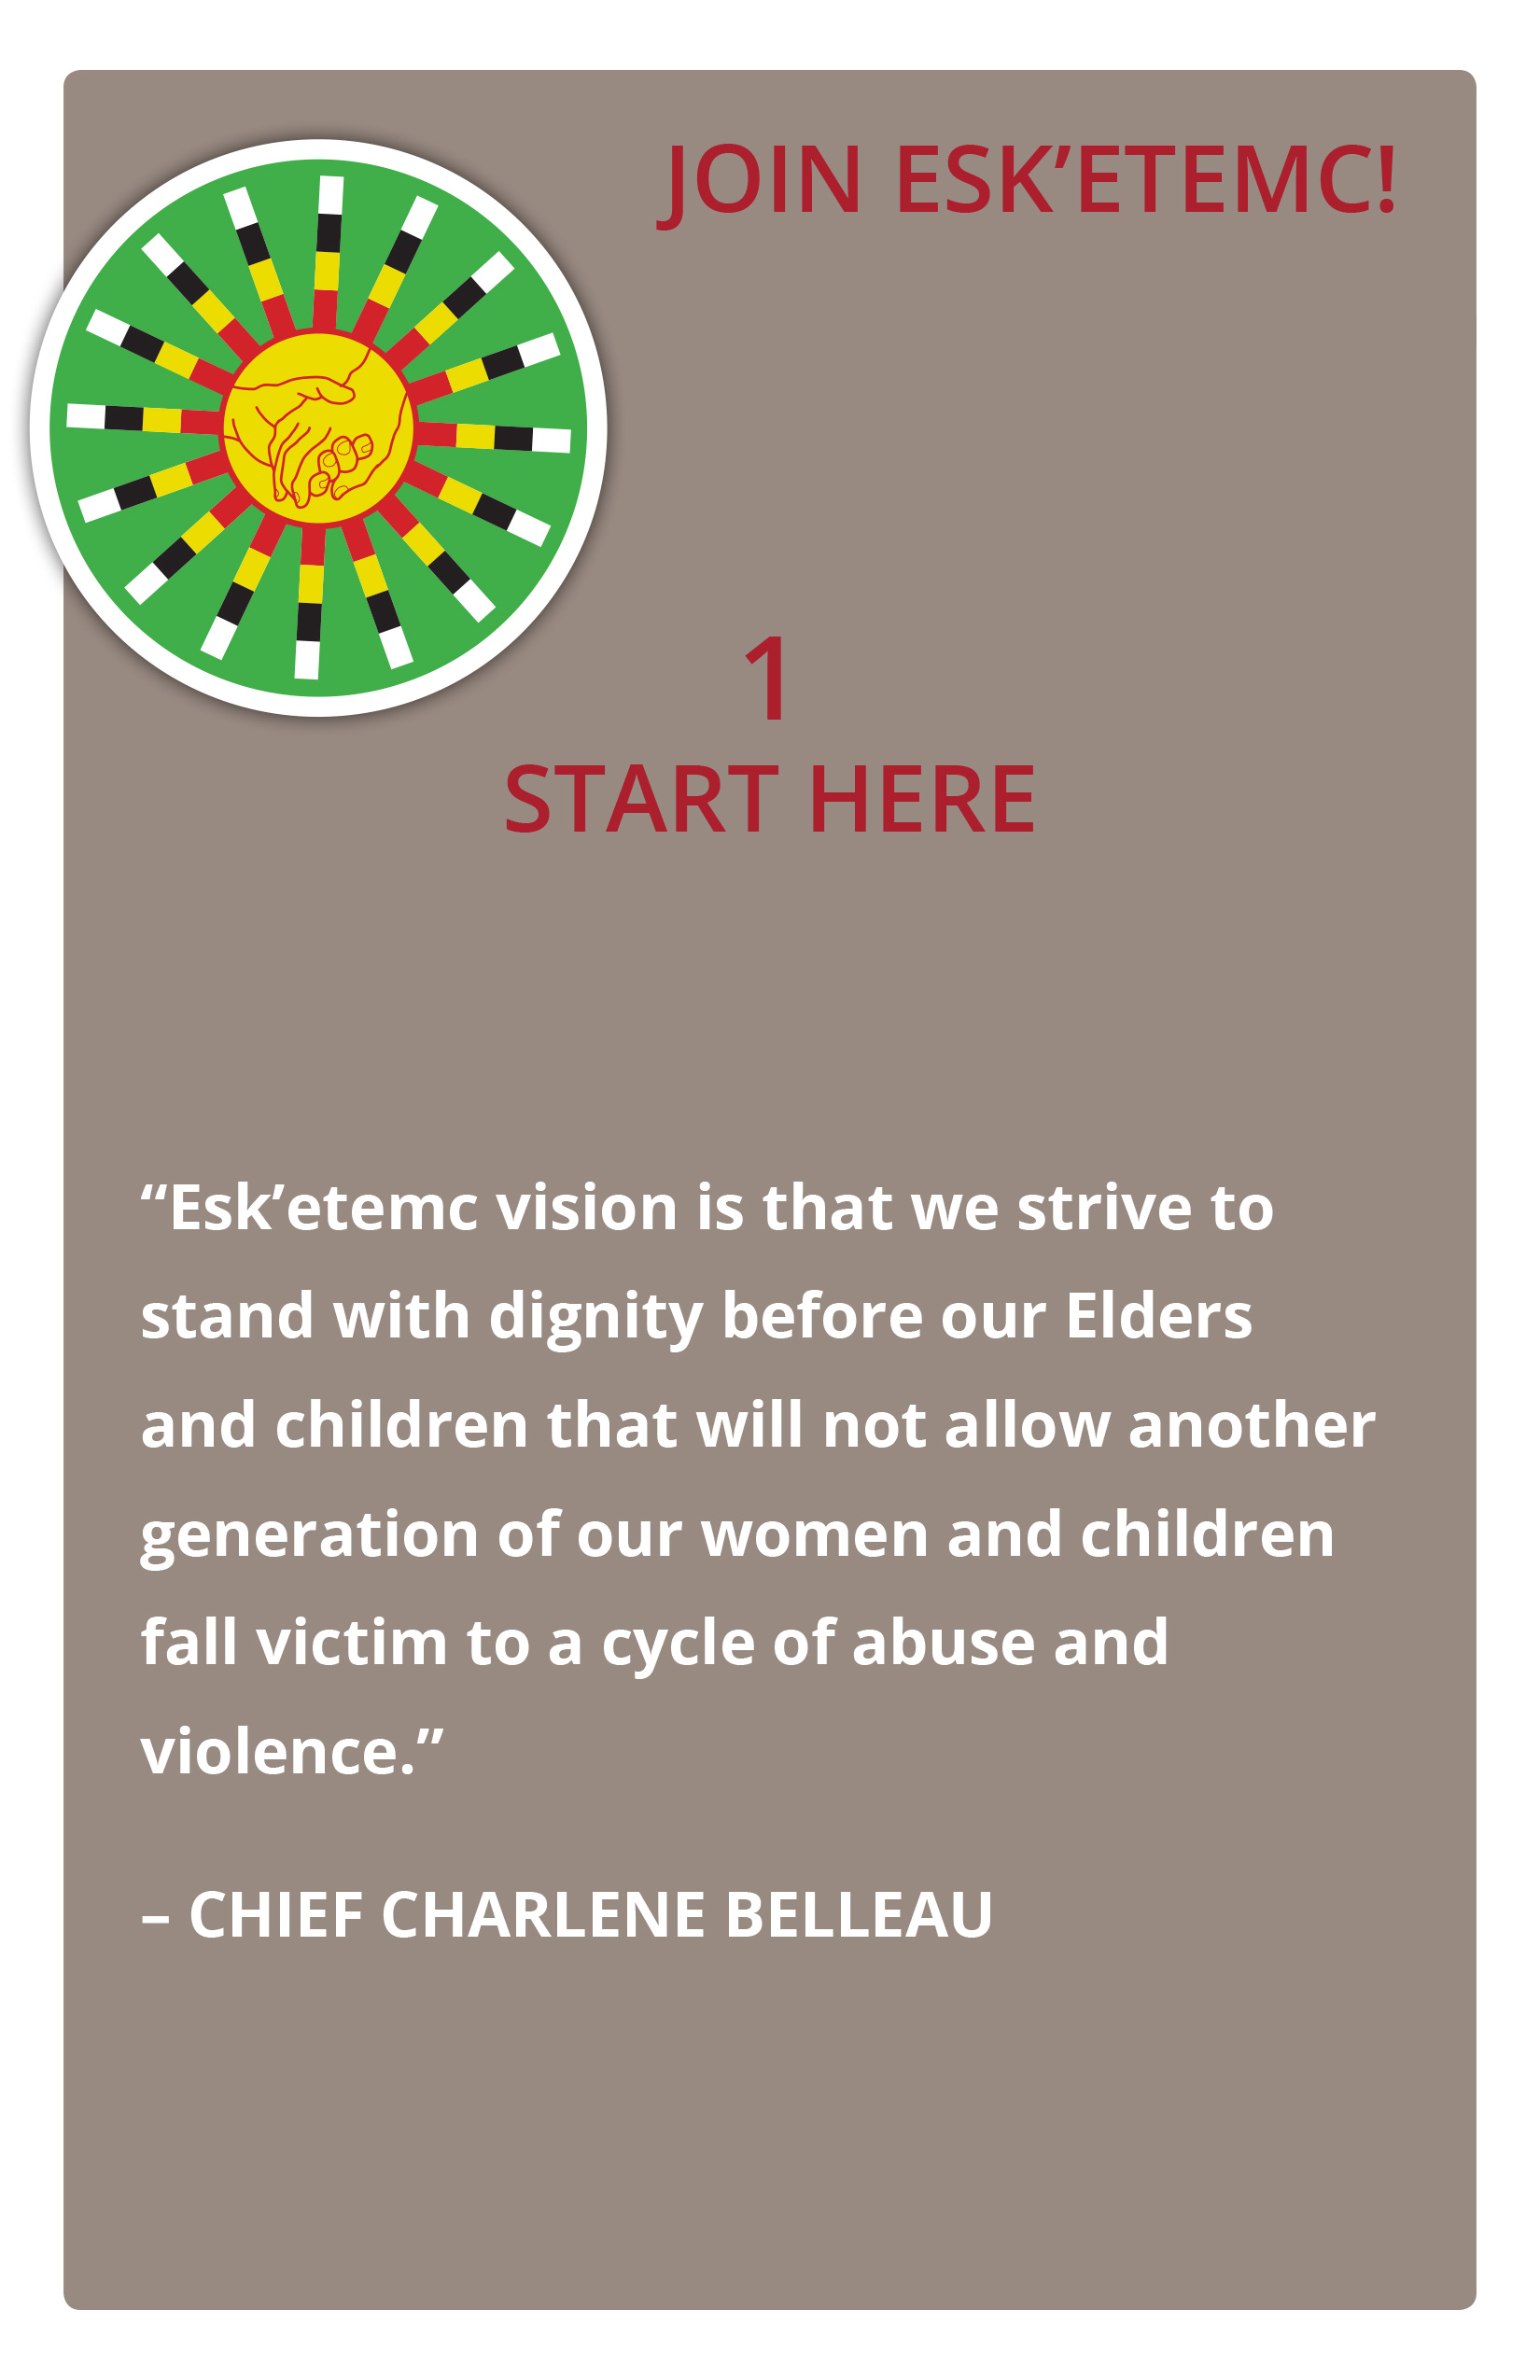 FNHA-Commitment-Stick-Initiative-Event-Promotion-Guide-Start-Here.jpg